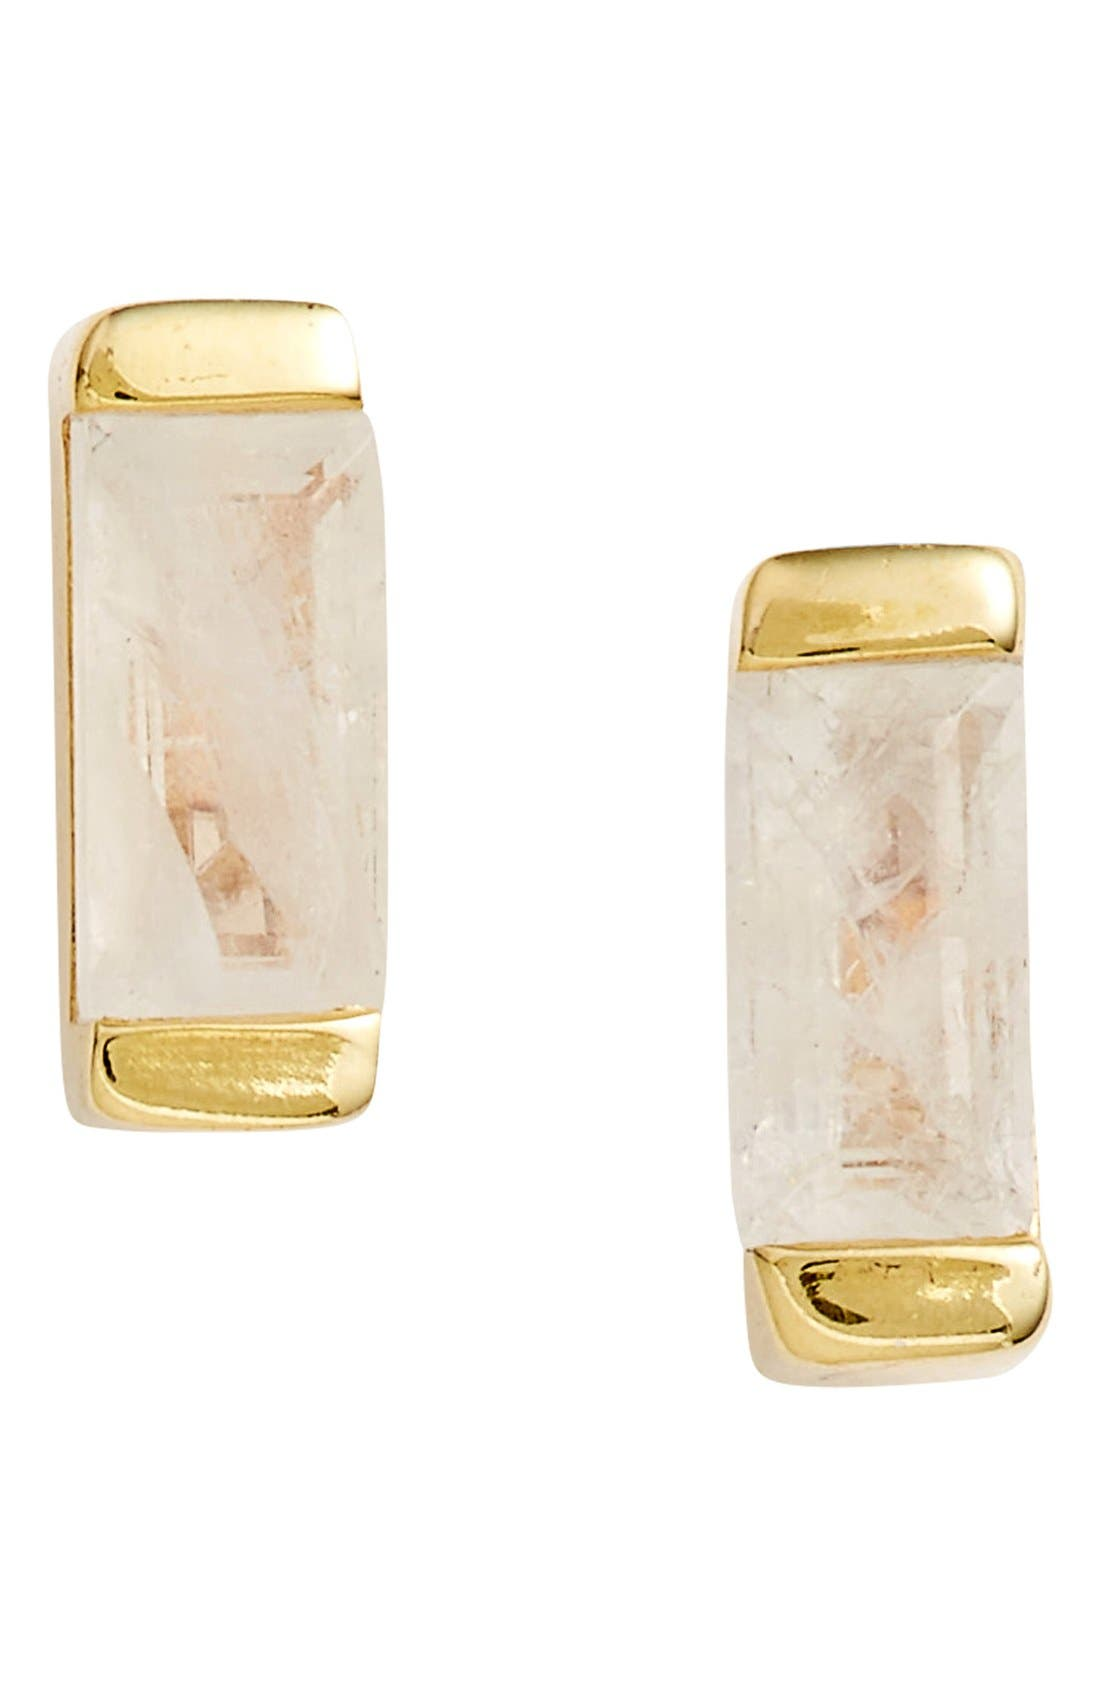 LEAH ALEXANDRA Semiprecious Stone Stud Earrings